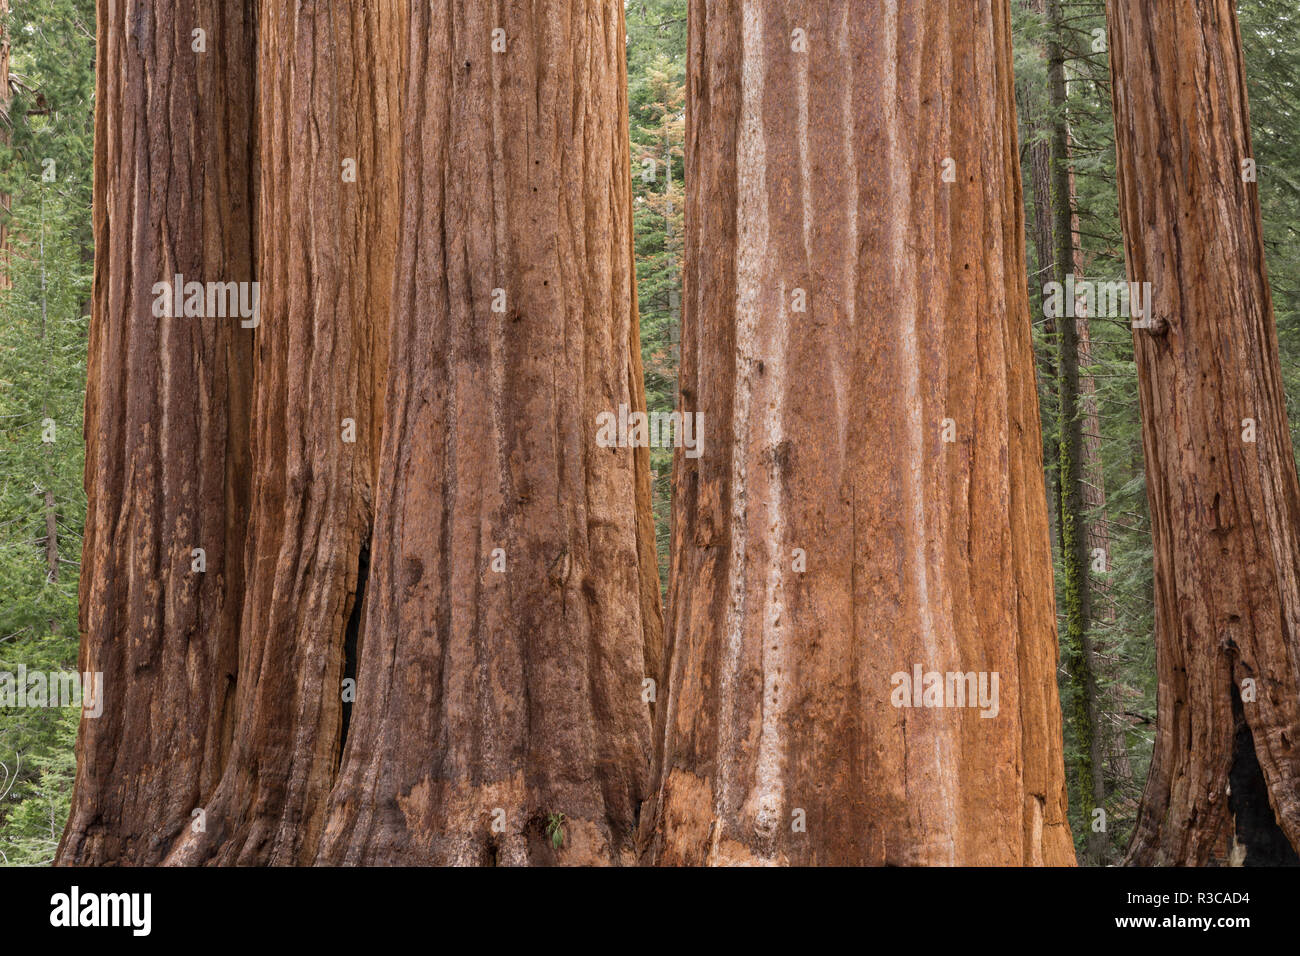 USA, California, Sequoia National Park. Sequoia trees close-up. - Stock Image